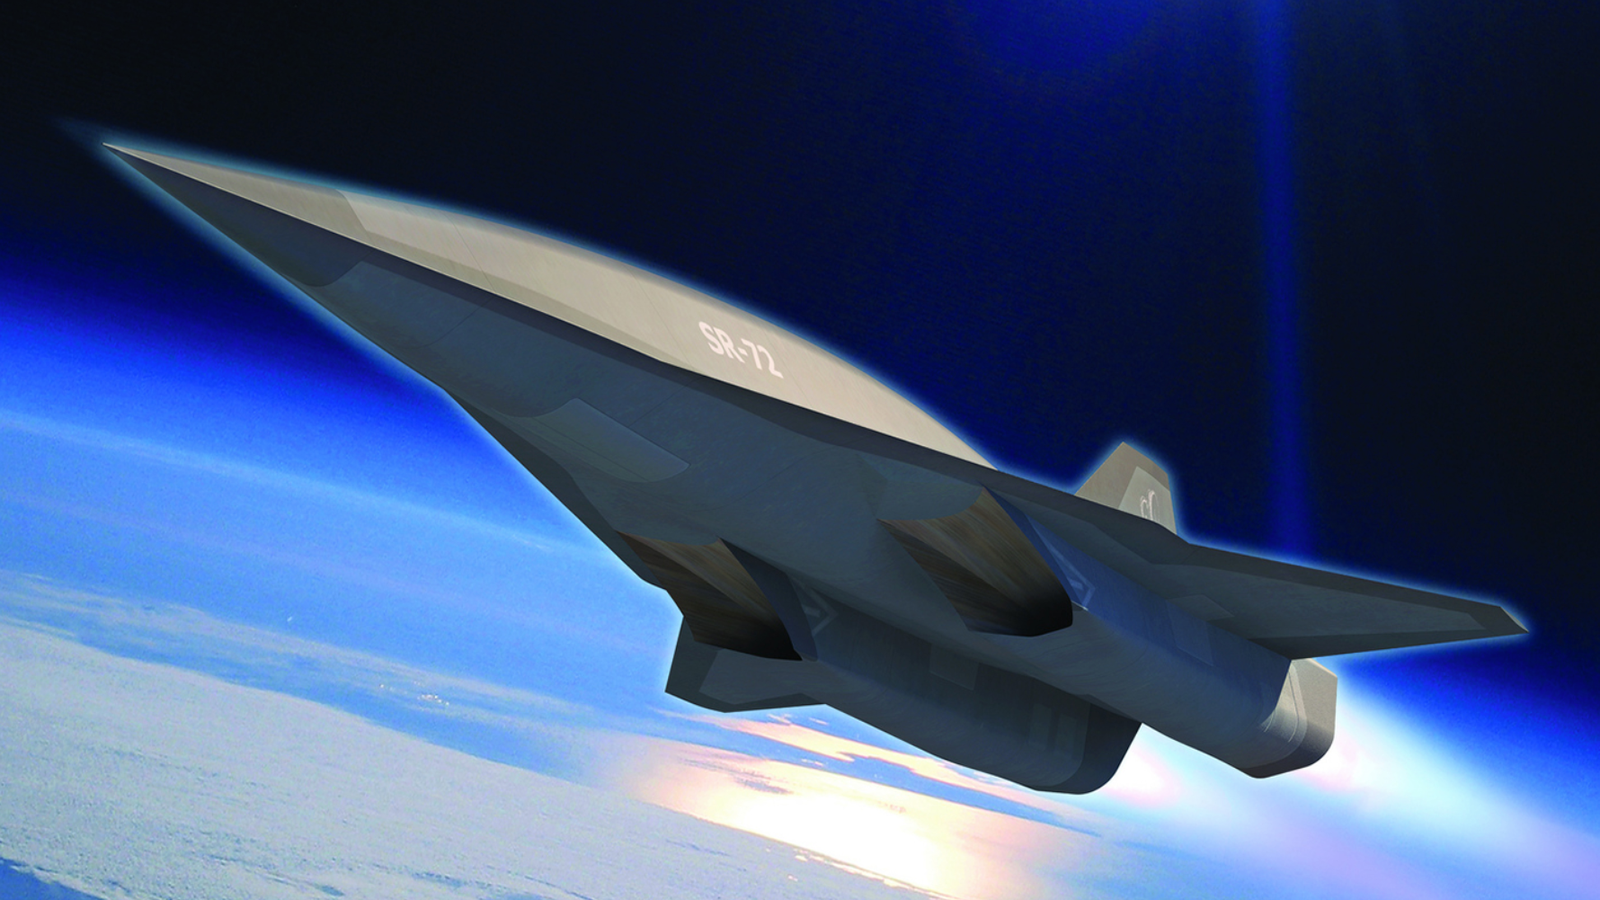 Lockheed Martin May Be Closer To Completing The Hypersonic SR-72 Than We Thought